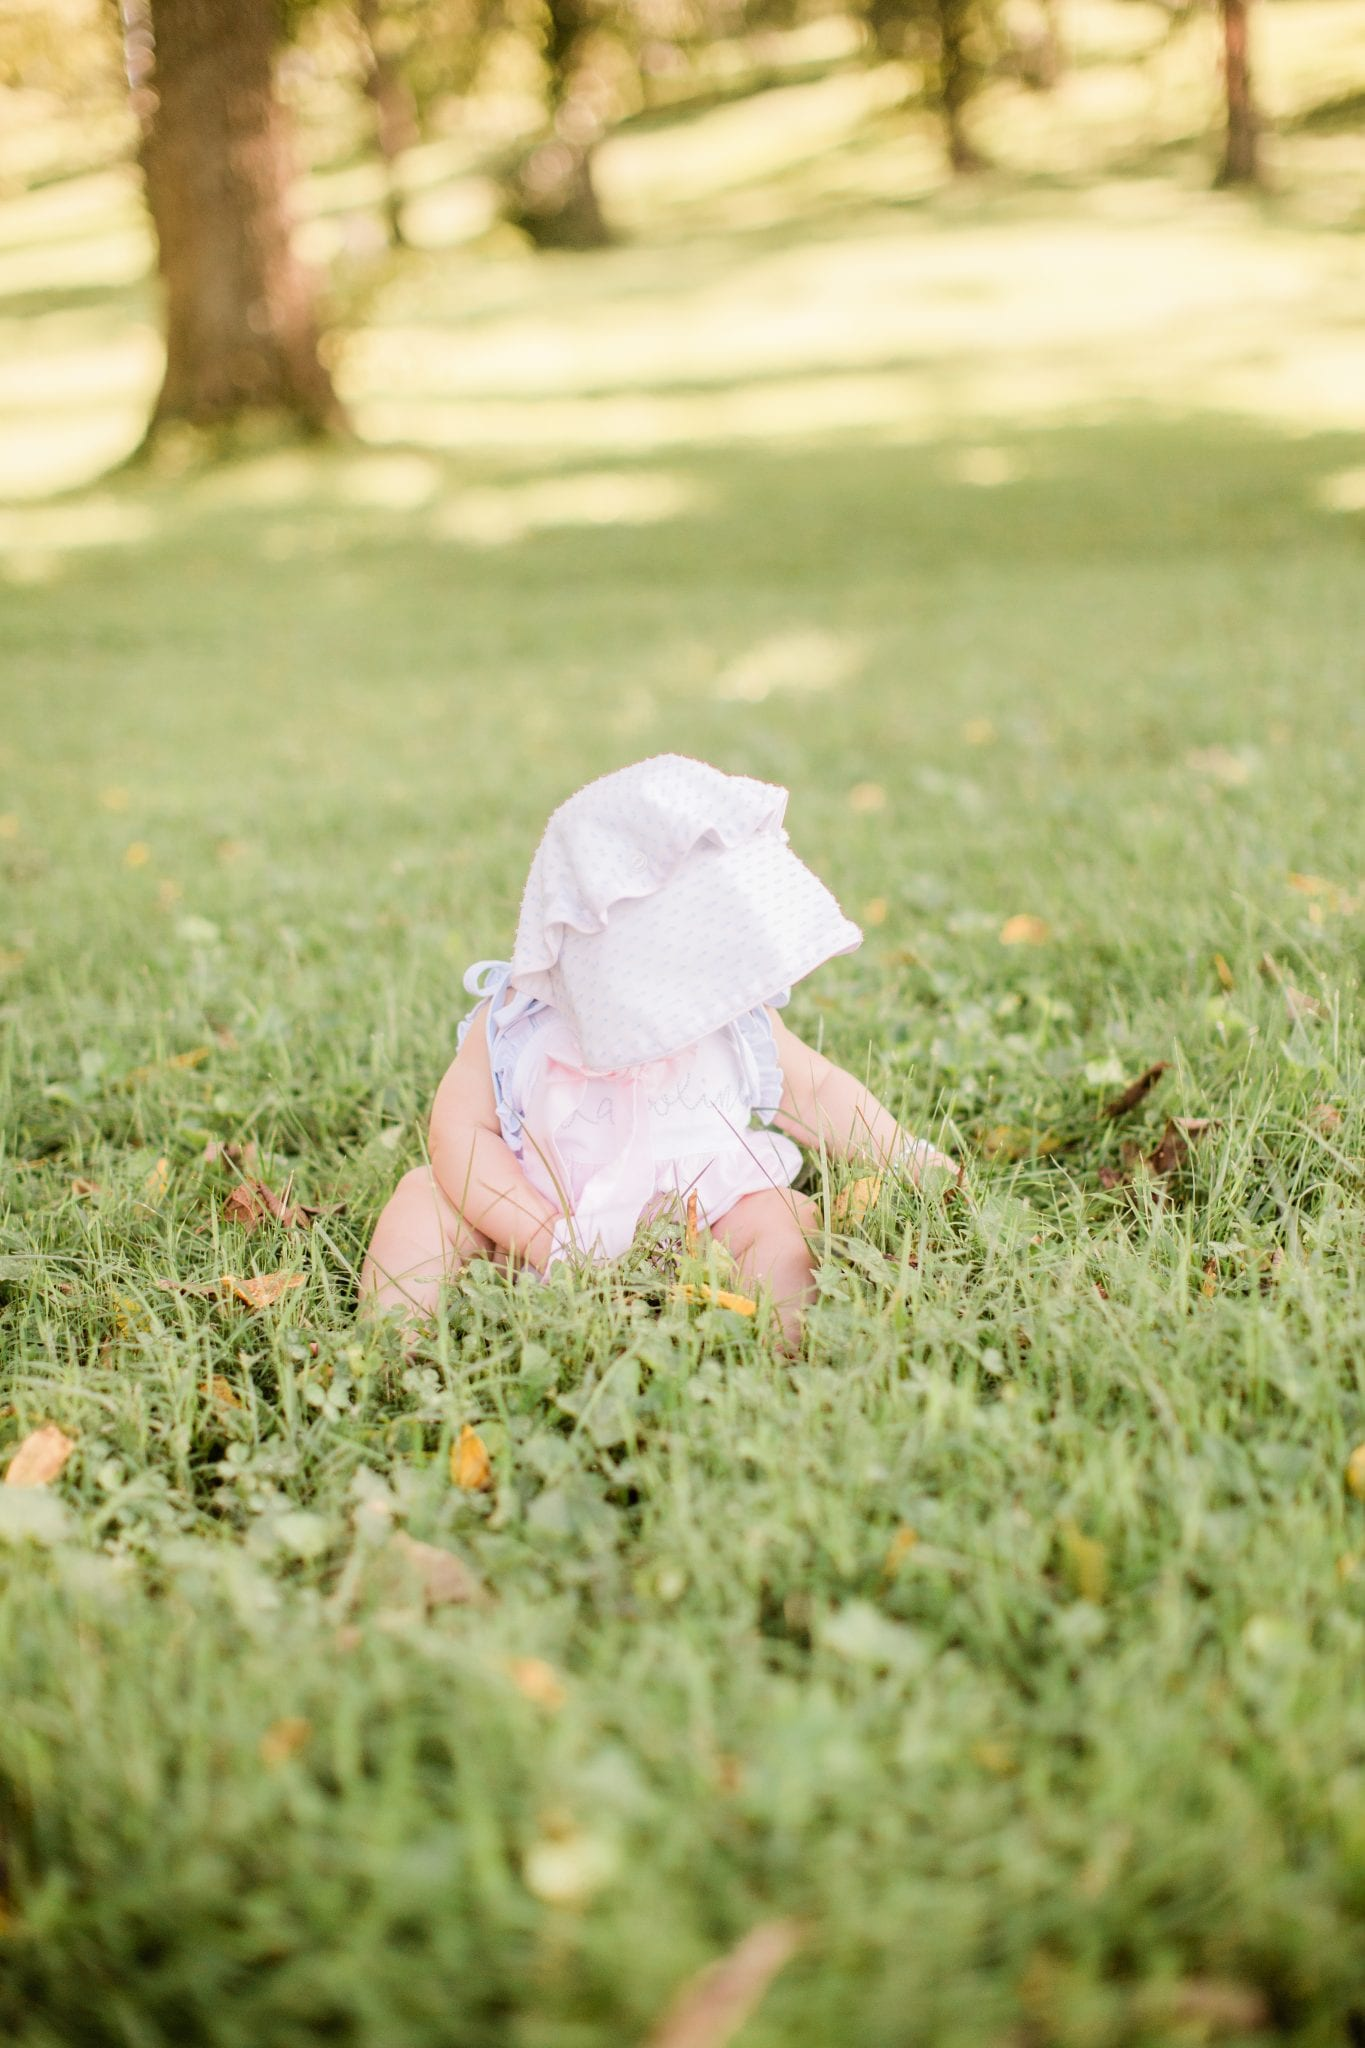 Our Family of Four at 6 Months: Karoline's 6 month baby pictures